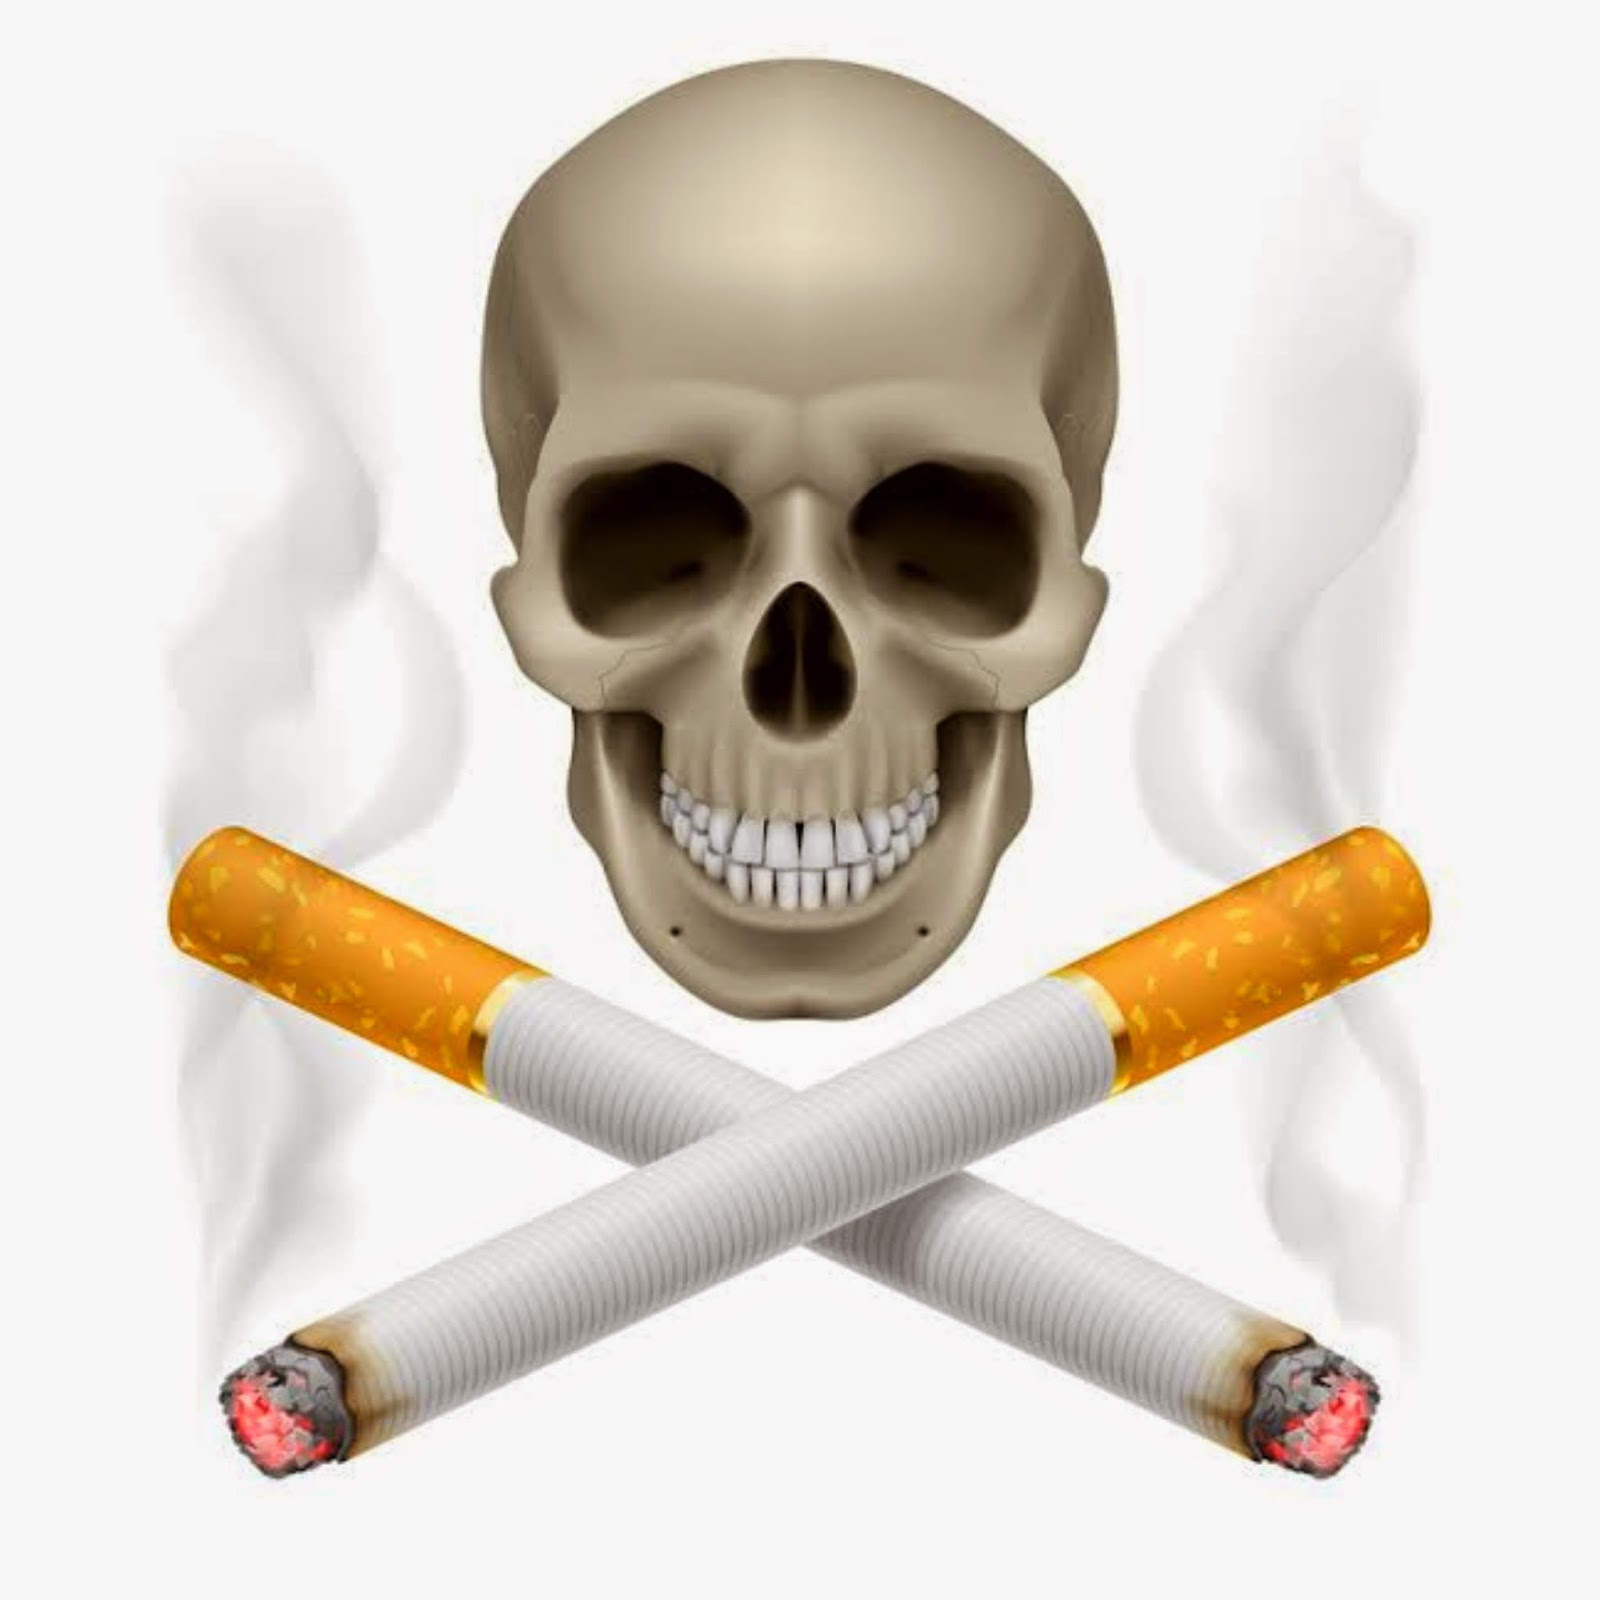 Smoking is harmful to your health 7